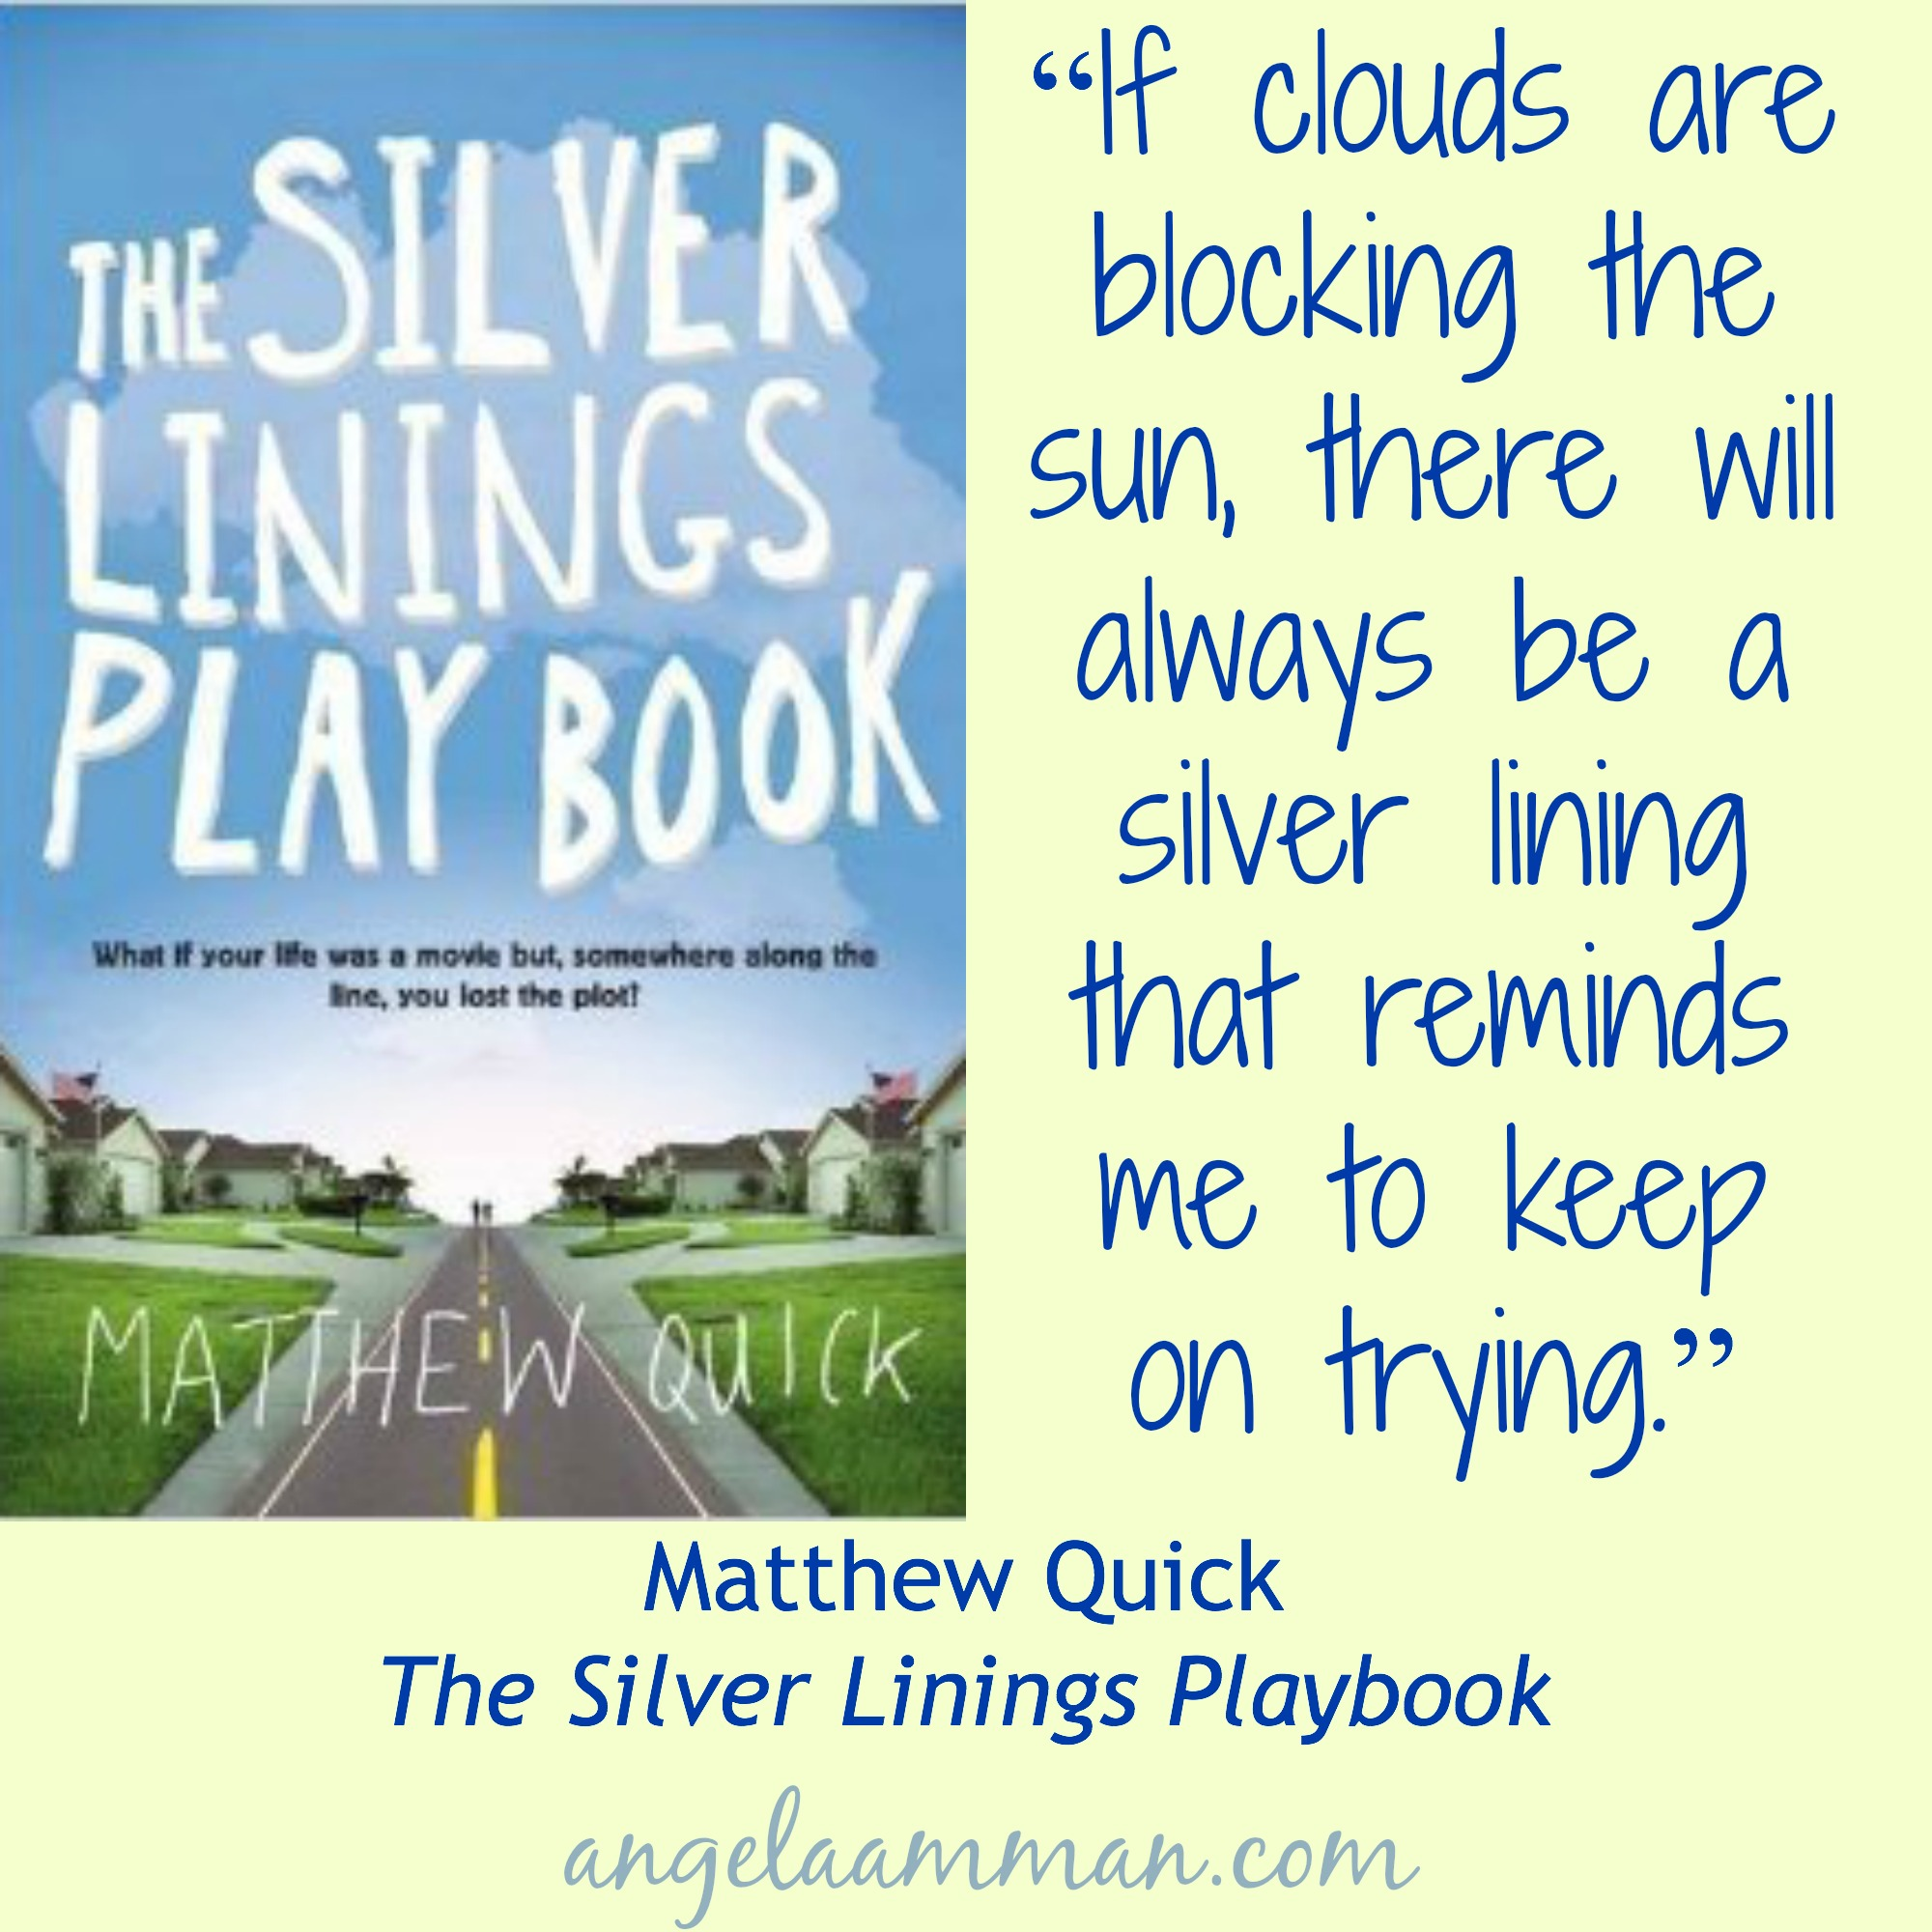 silver linings playbook essay The movie, the silver linings playbook by david o russel, shows a phenomenal representation of several mental health issues and everyday problems going on in almost the whole entire cast.